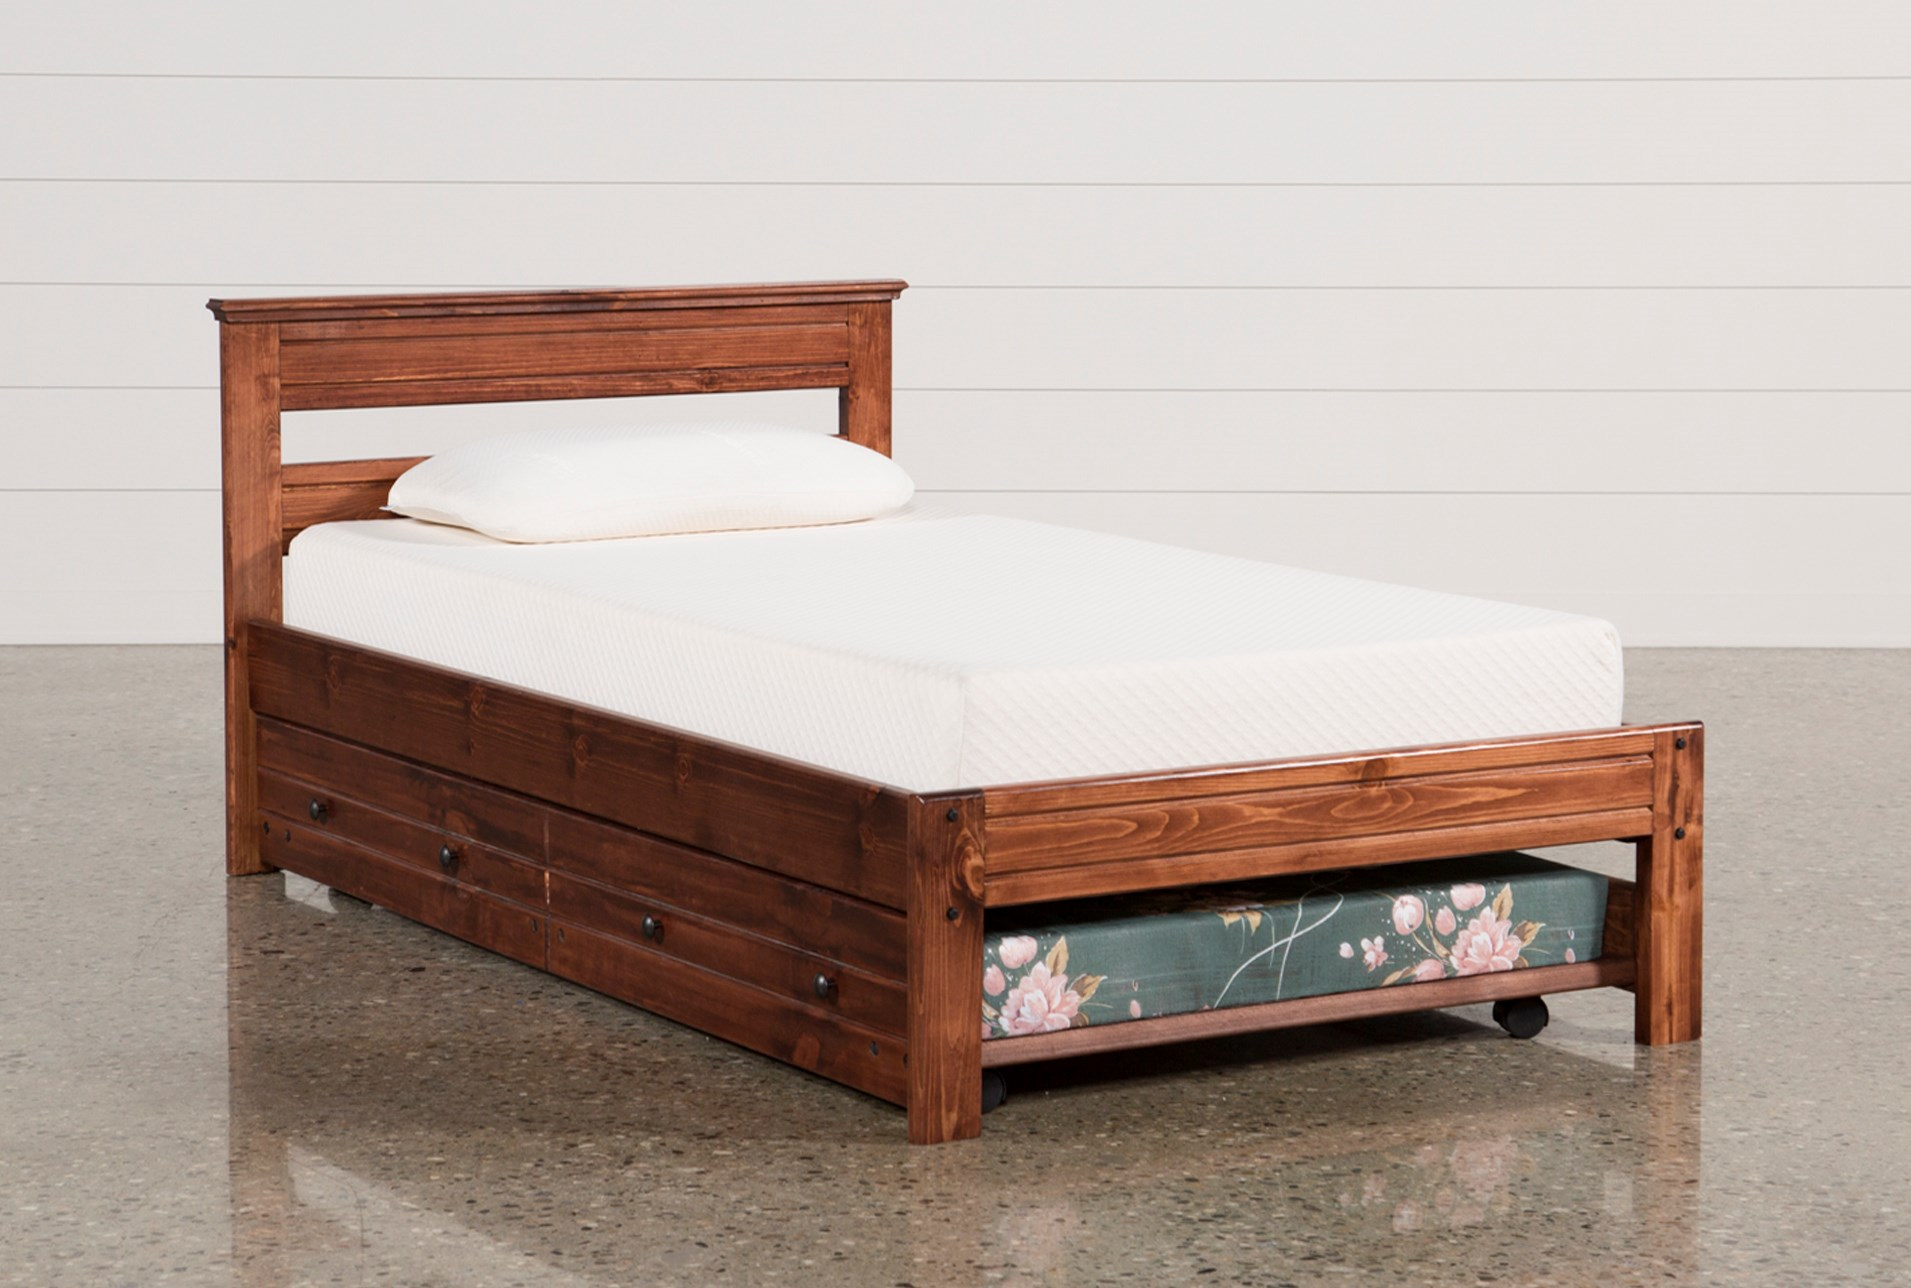 Sedona Twin Platform Bed With Trundle Mattress Qty 1 Has Been Successfully Added To Your Cart